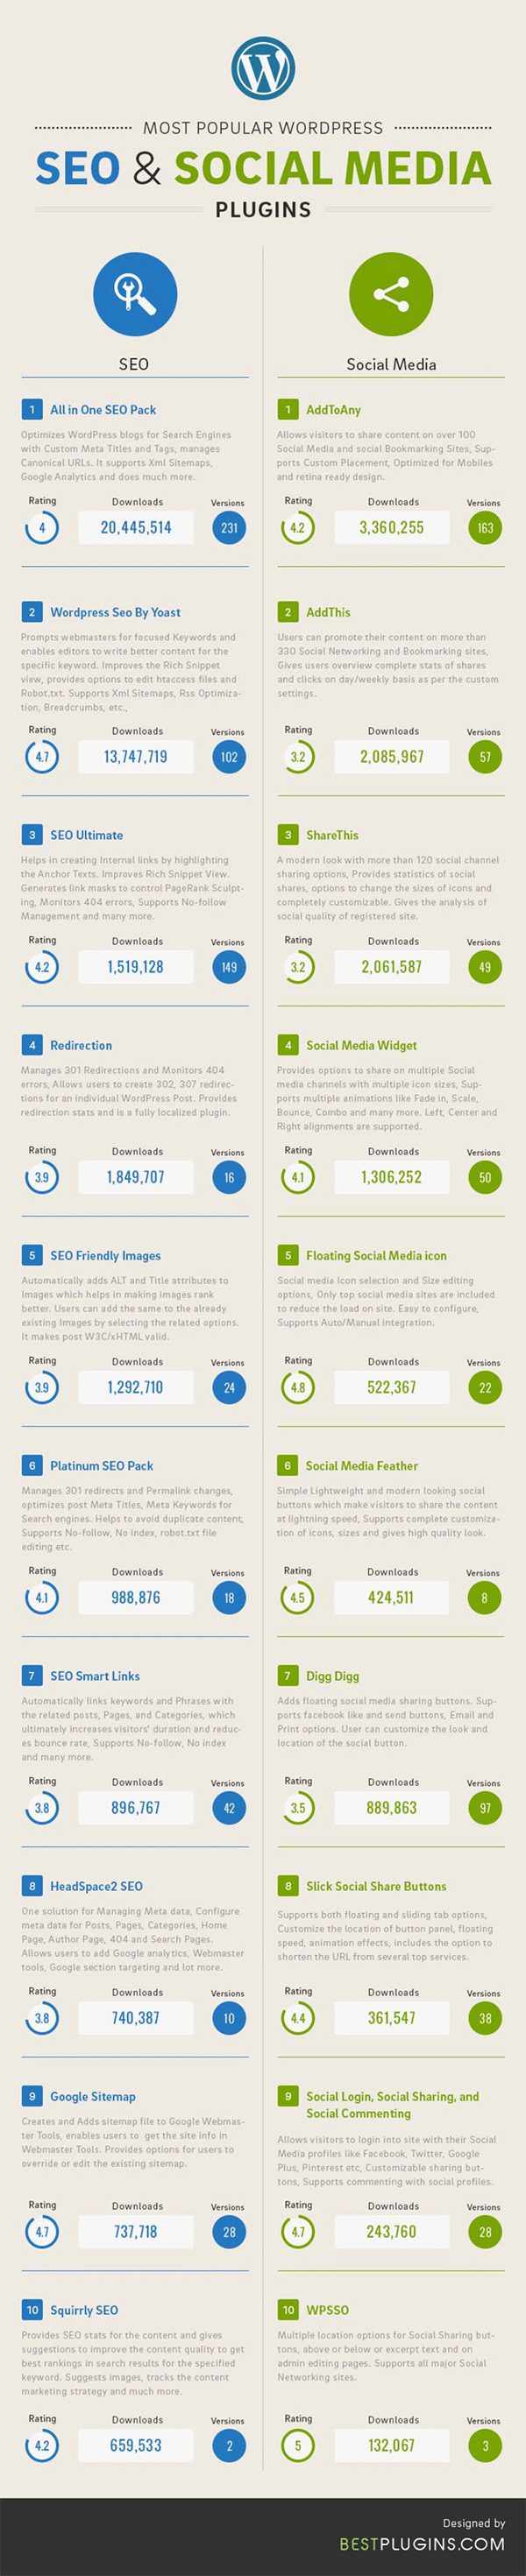 Wordpress plugins SEO social media